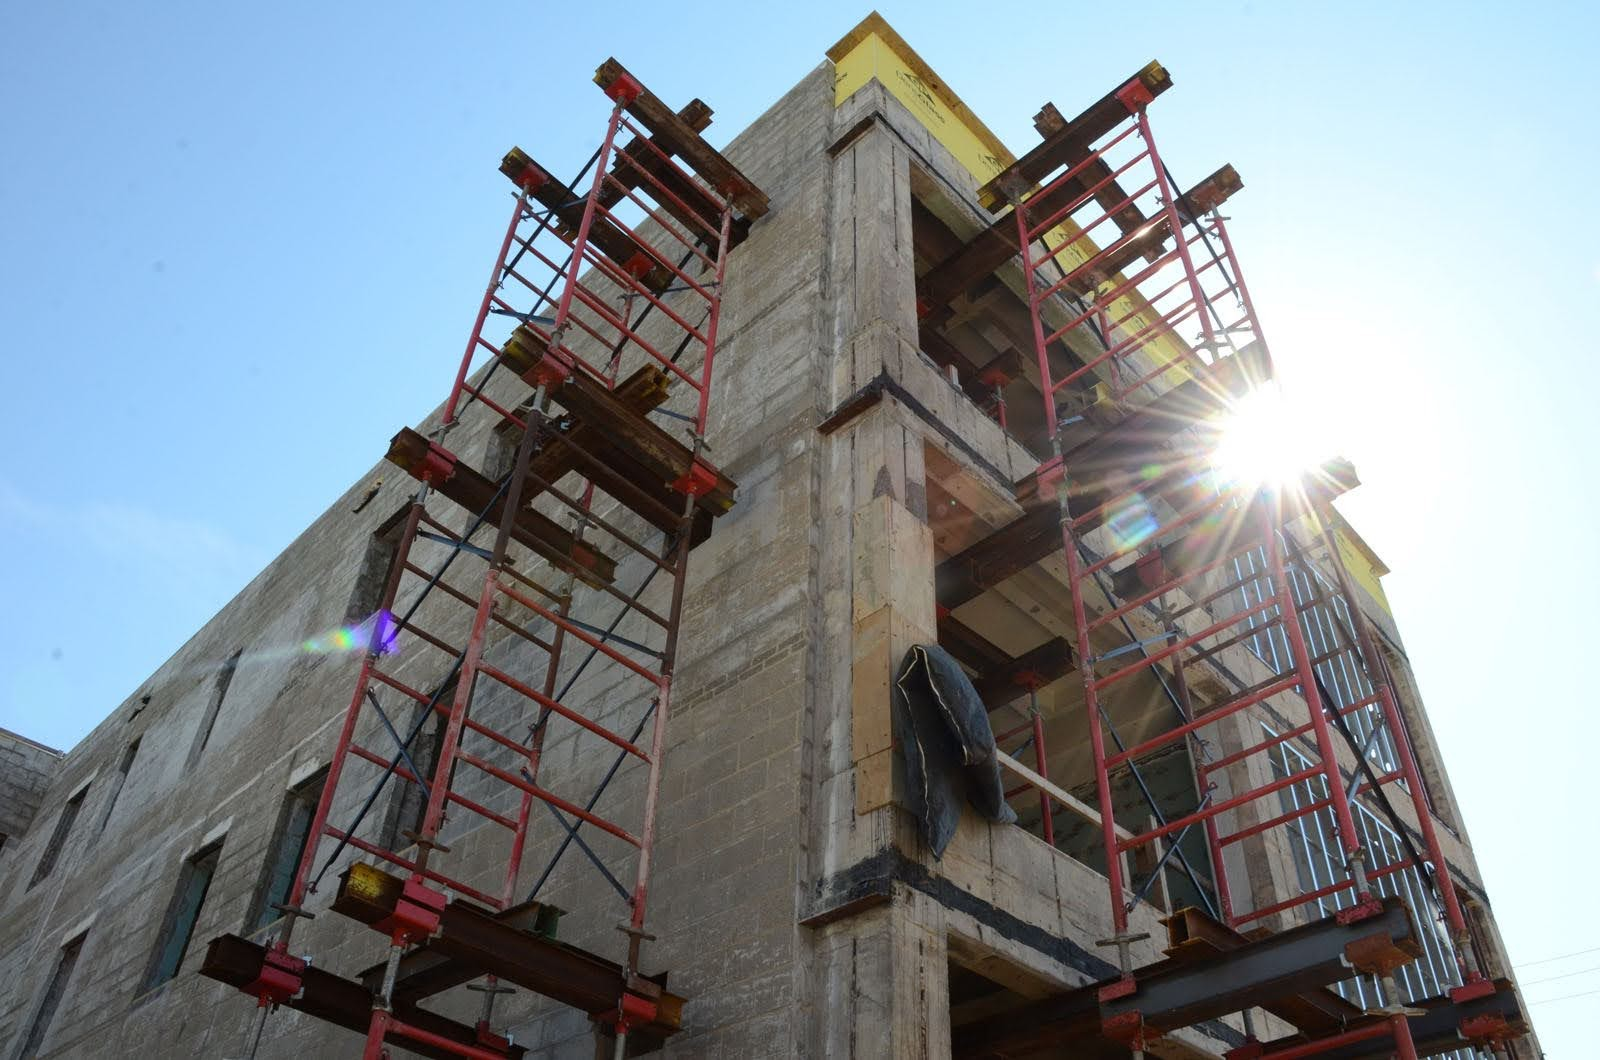 Scaffold, scaffolding, scaffolding, rent, rents, scaffolding rental, construction, ladders, equipment rental, scaffolding Philadelphia, scaffold PA, philly, building materials, NJ, DE, MD, NY, renting, leasing, inspection, general contractor, masonry, 215 743-2200, superior scaffold, electrical, HVAC, swing stage, swings, suspended scaffold, overhead protection, canopy, transport platform, lift, hoist, mast climber, access, buck hoist, upenn, u of p, pennovation